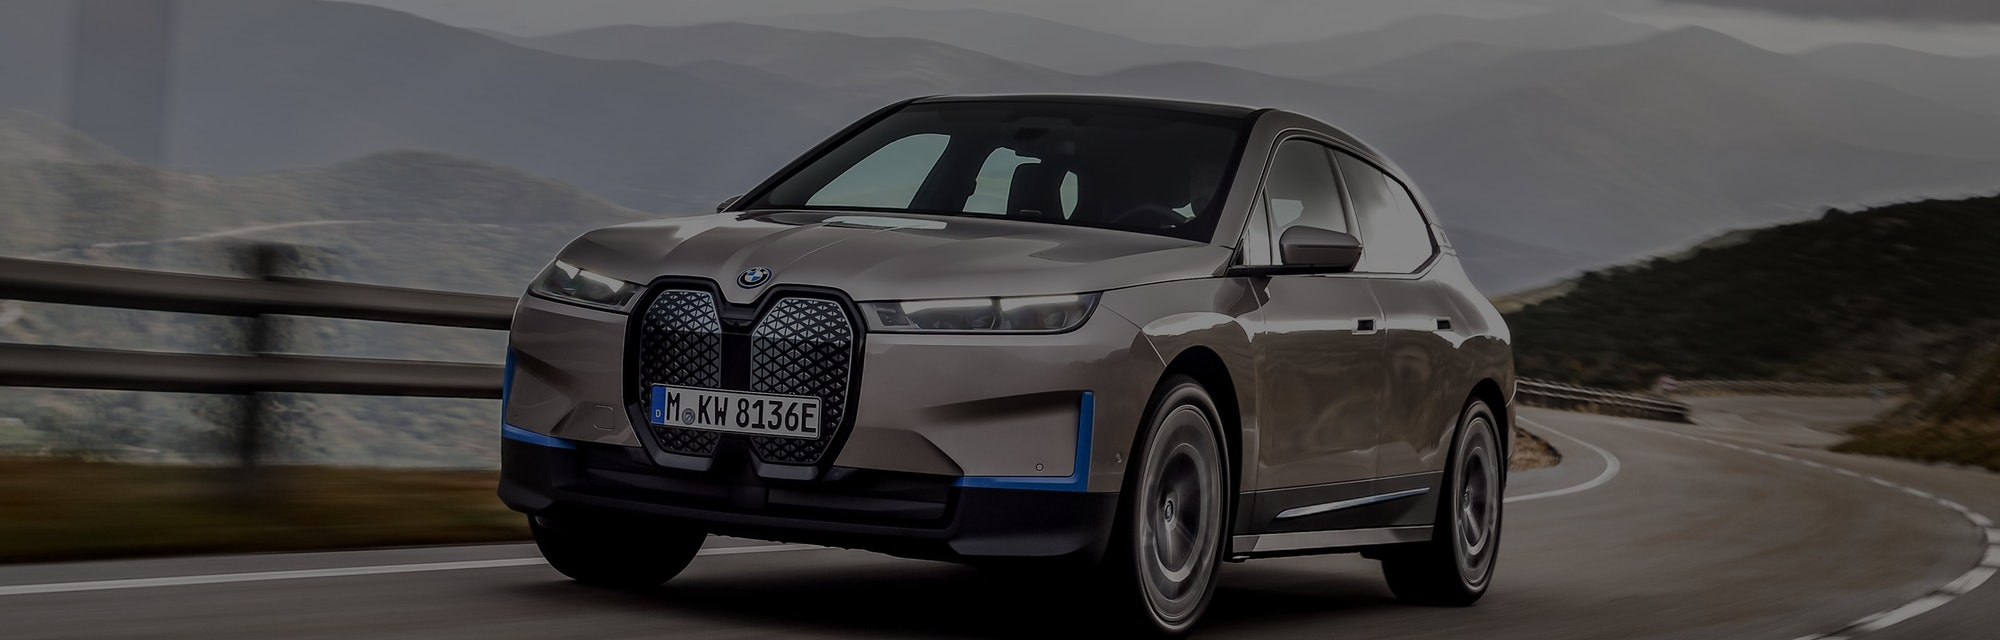 BMW's iX electric SUV, set to be released in 2021.